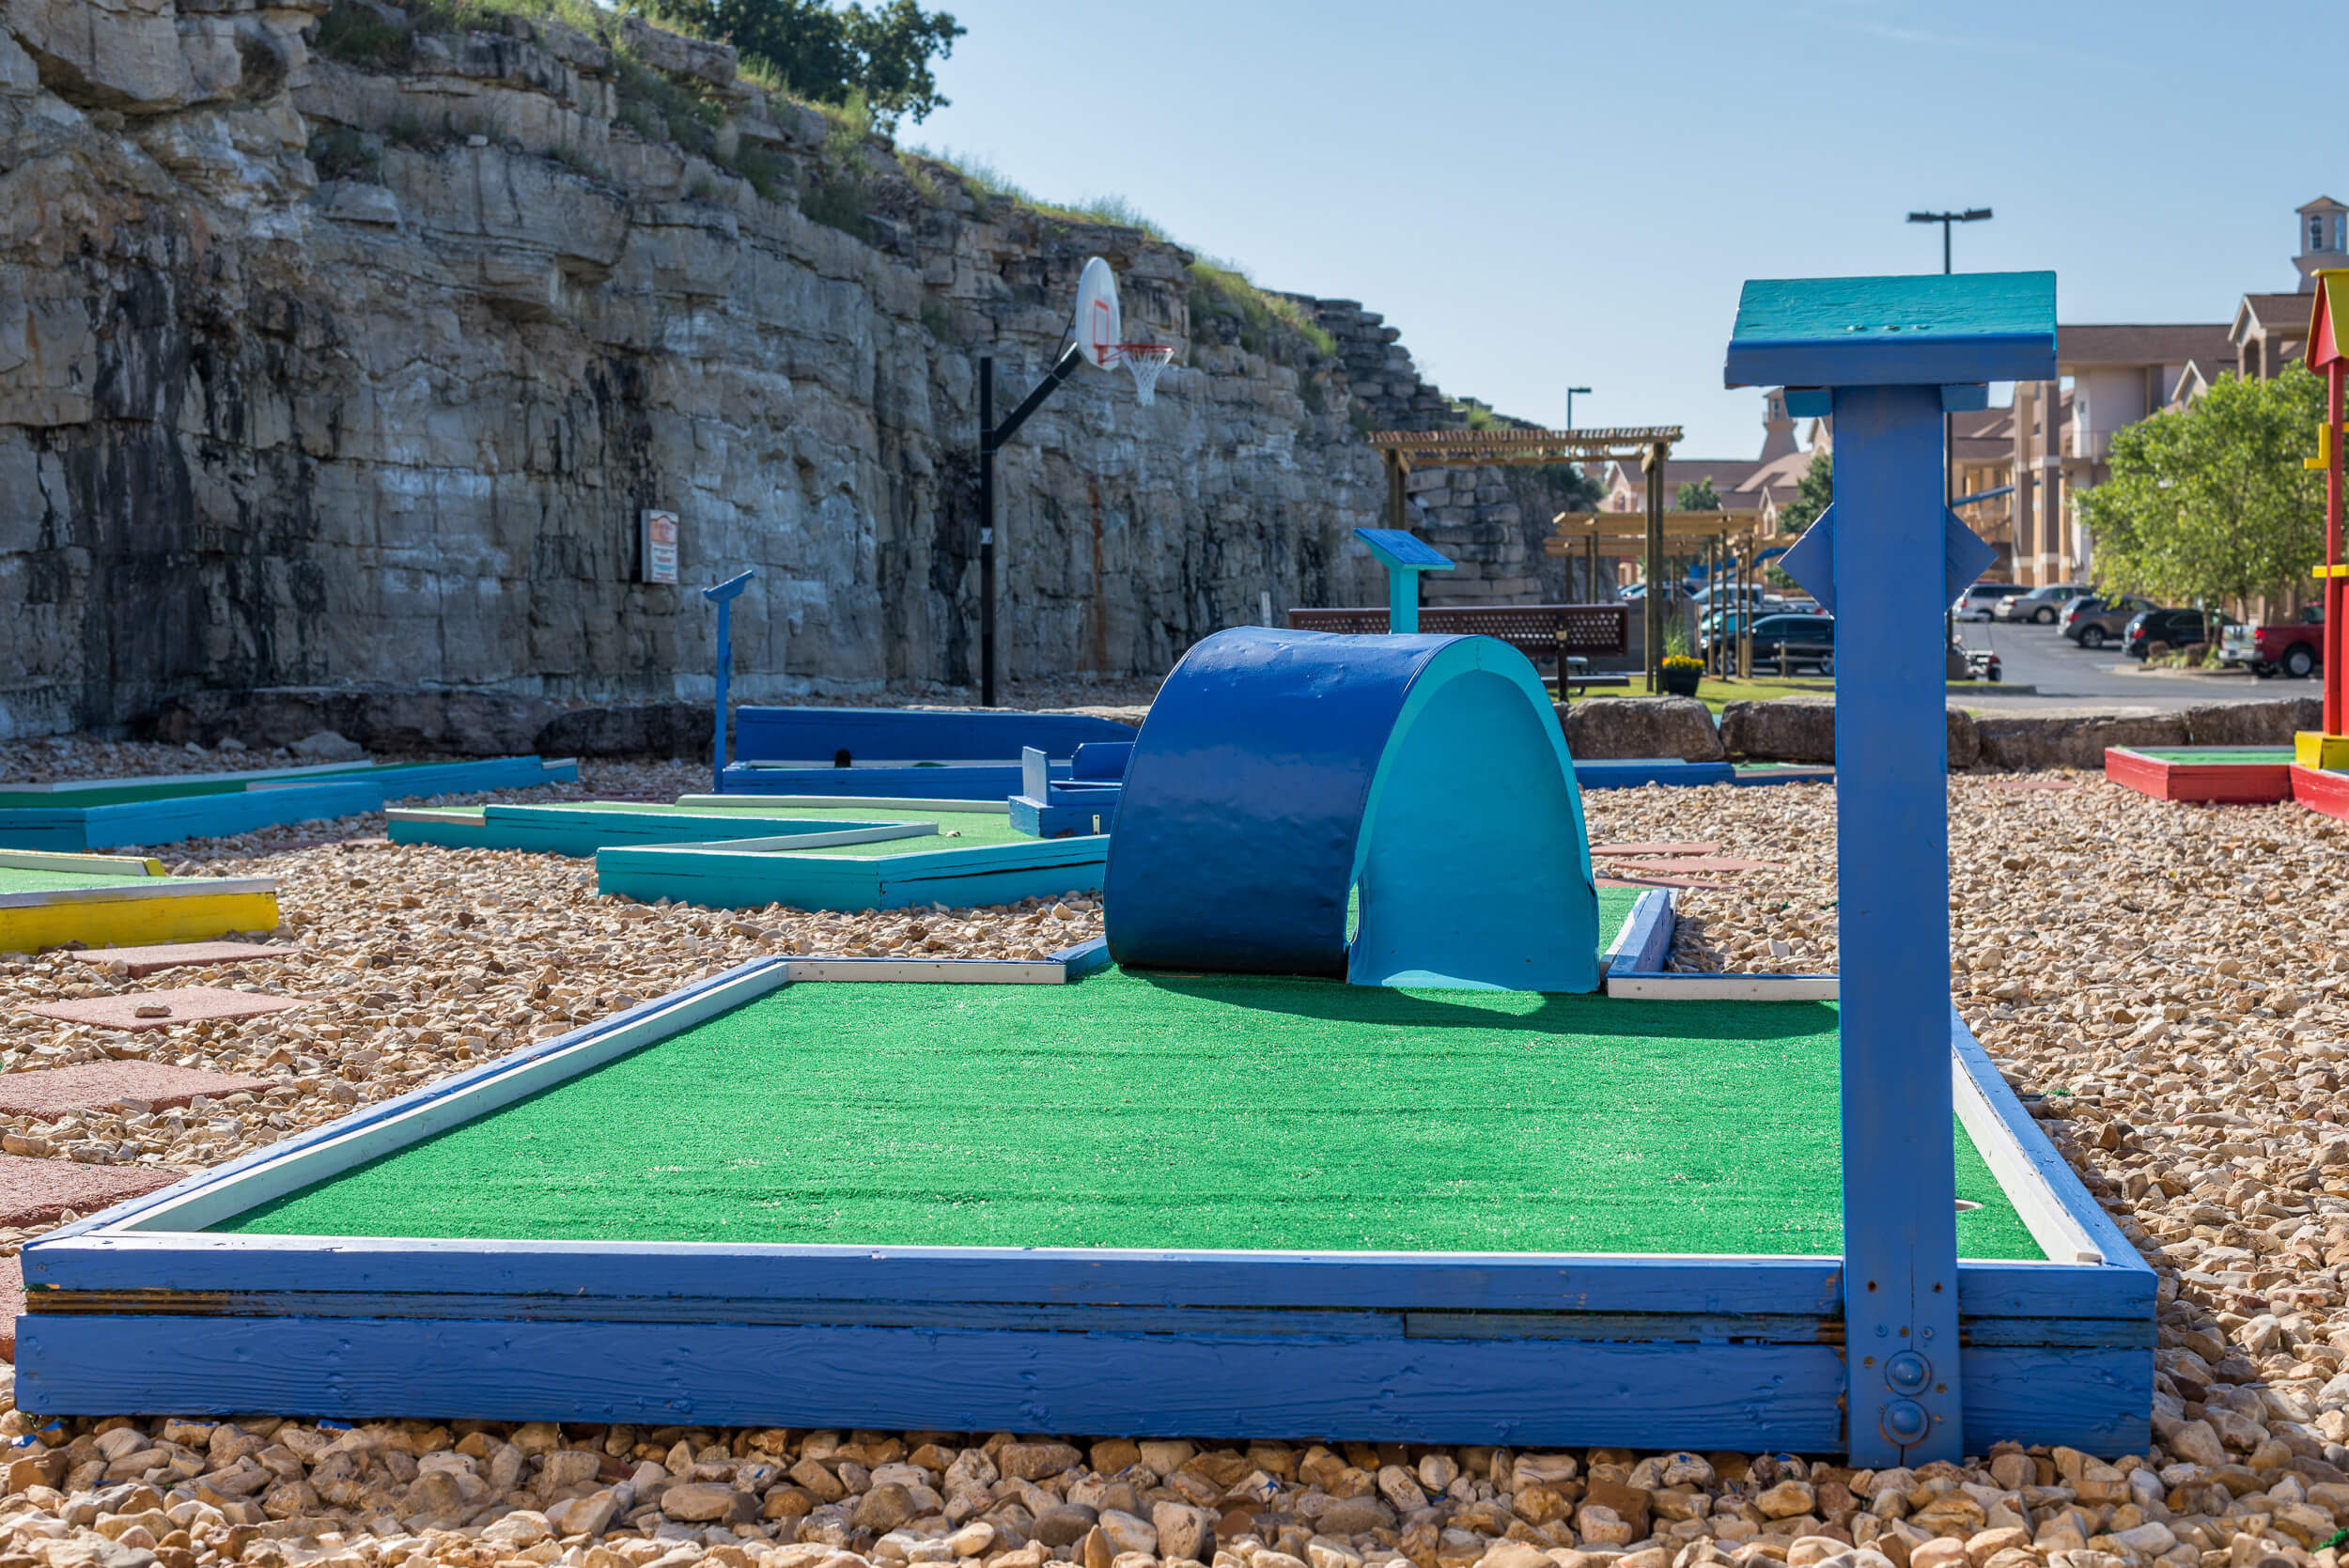 18-hole mini golf course onsite | Westgate Branson Lakes Resort | Westgate Family Resorts in Missouri